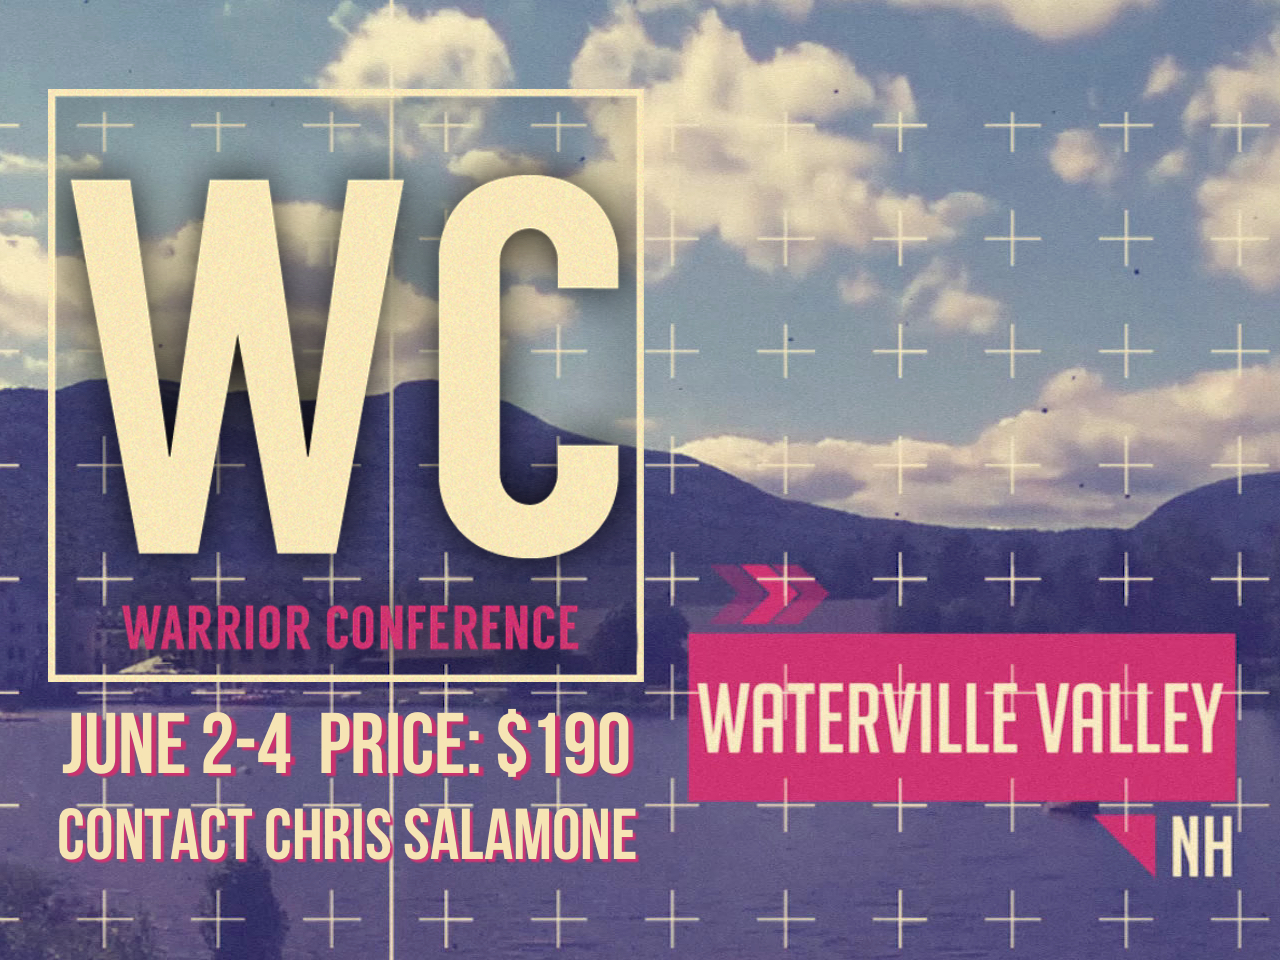 The men of BrookRidge are going to the Warrior Conference from June 2nd to June 4th in Waterville Valley, NH. It's a great time of fellowship, recreation, and encouraging teaching and worship with men from BrookRidge as well as other churches in the area. The fee for the retreat is $190. If you are interested in going, contact Chris Salamone at   chris.salamone@hotmail.com  or 781.589.0549.